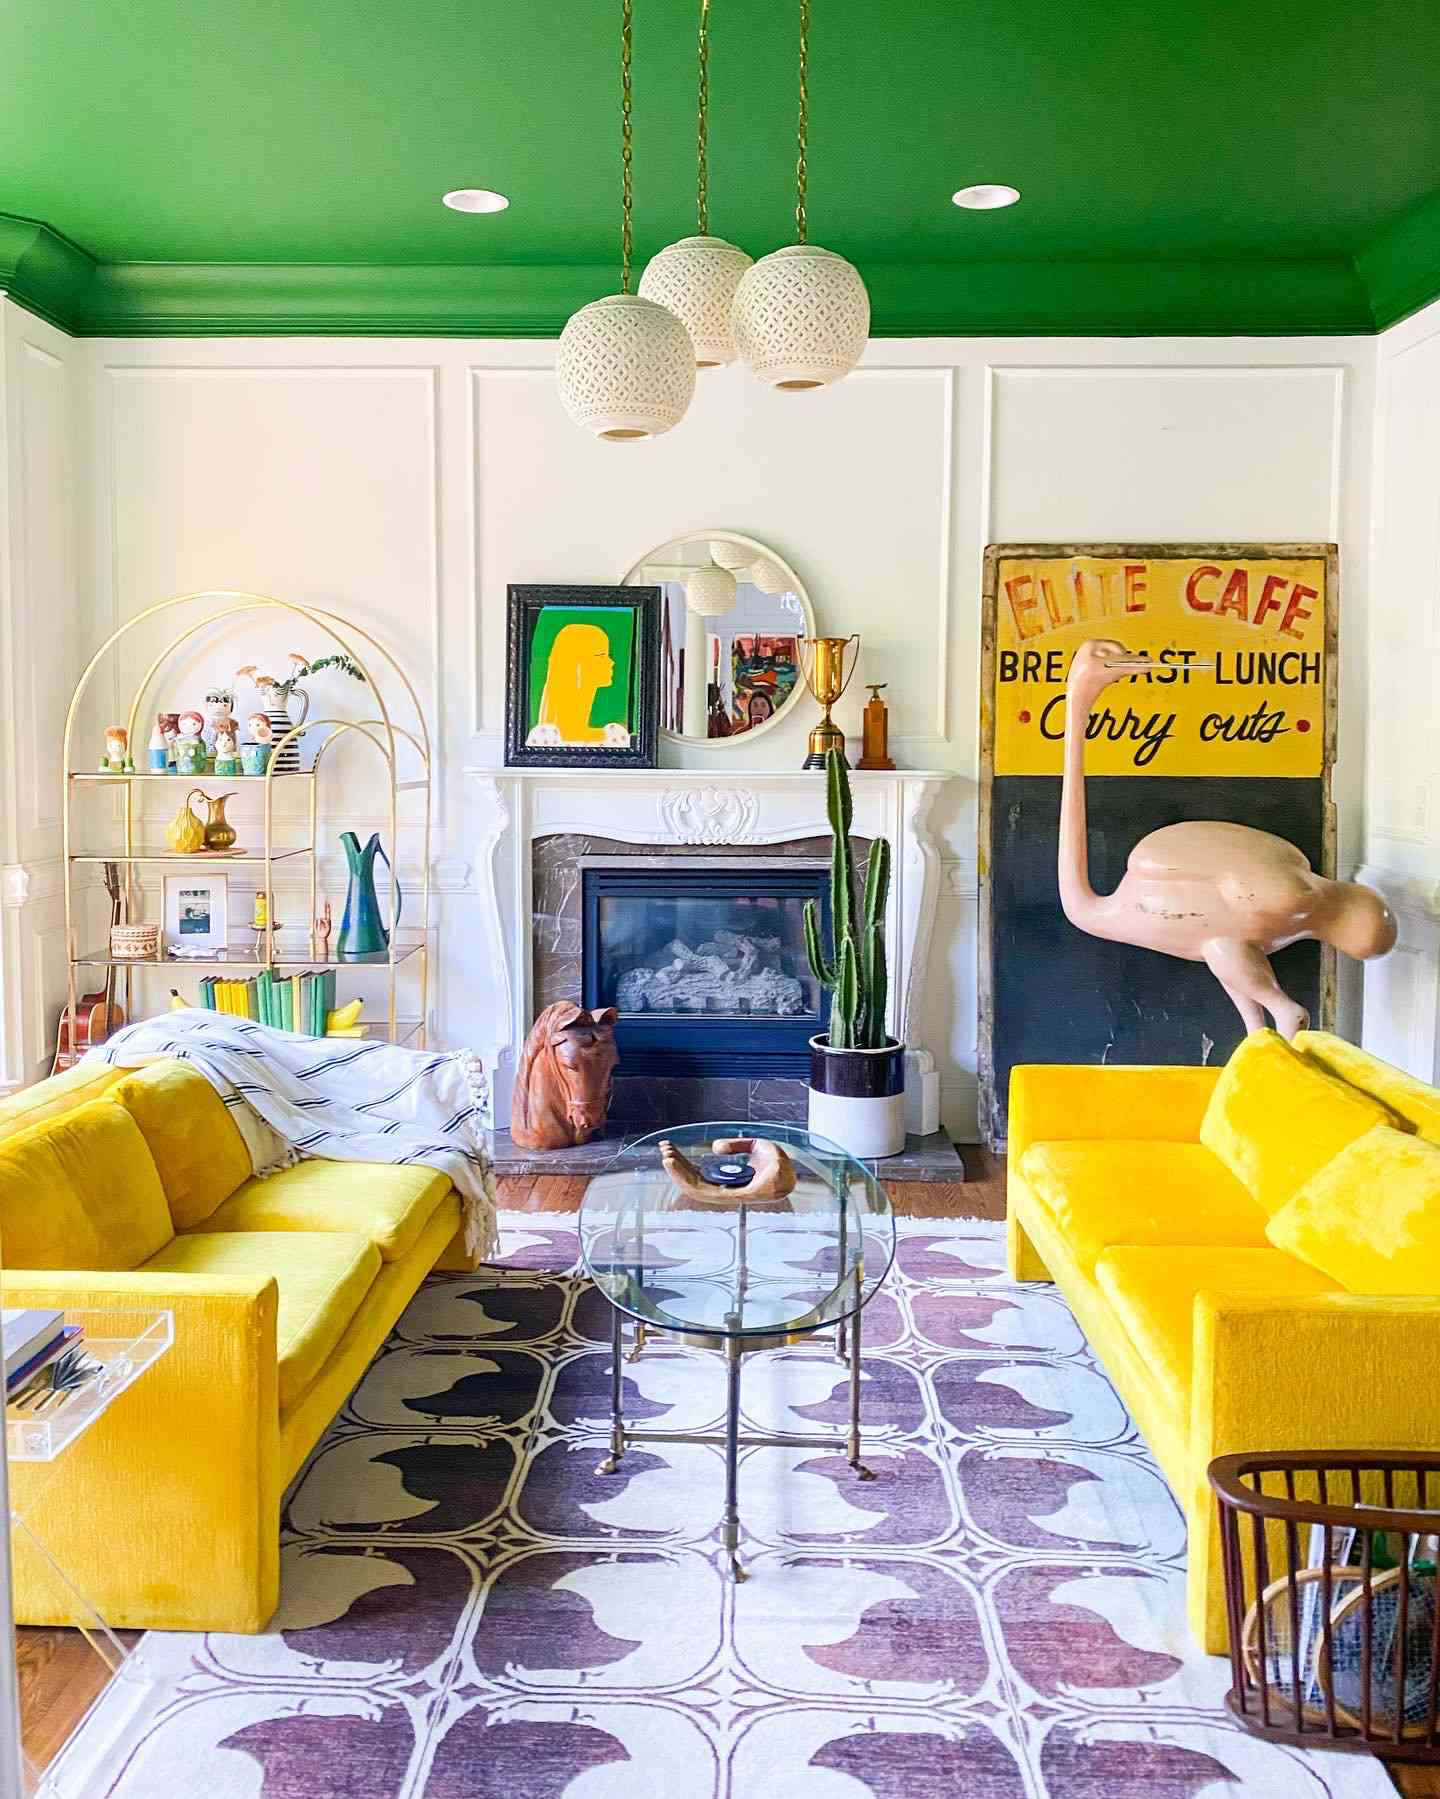 green colored ceiling